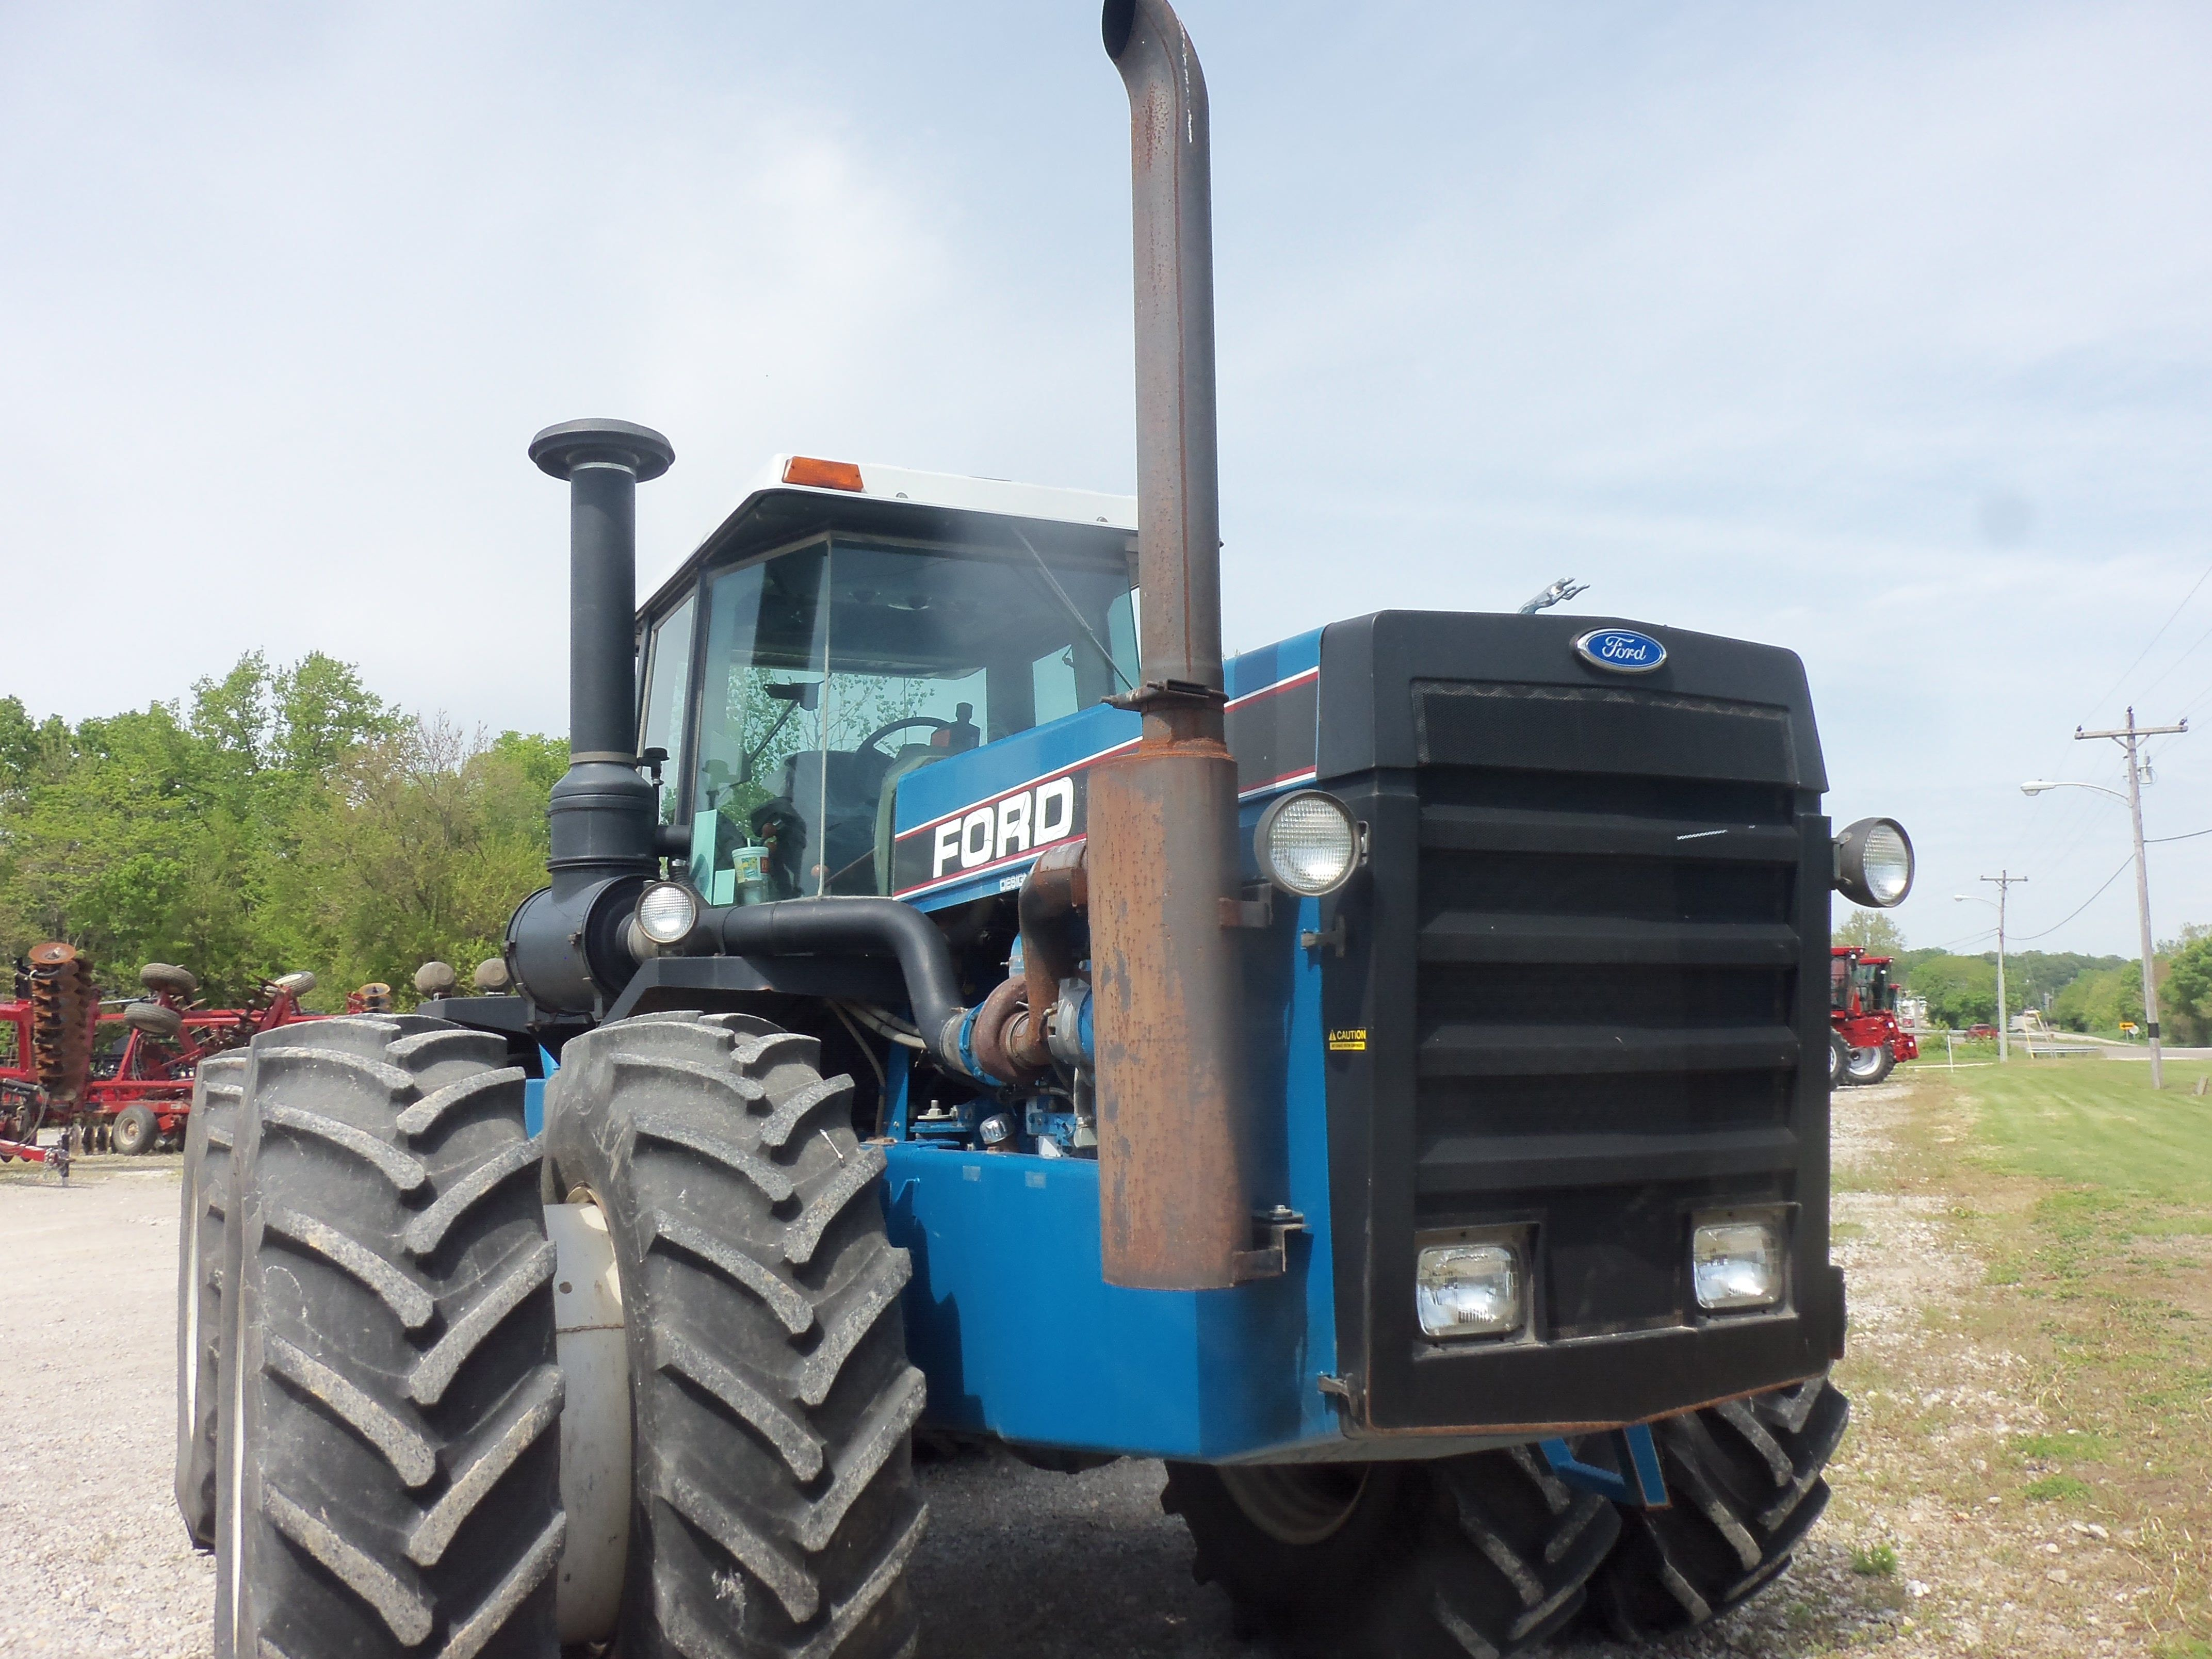 Ford Versatile 846-6 4WD tractor.